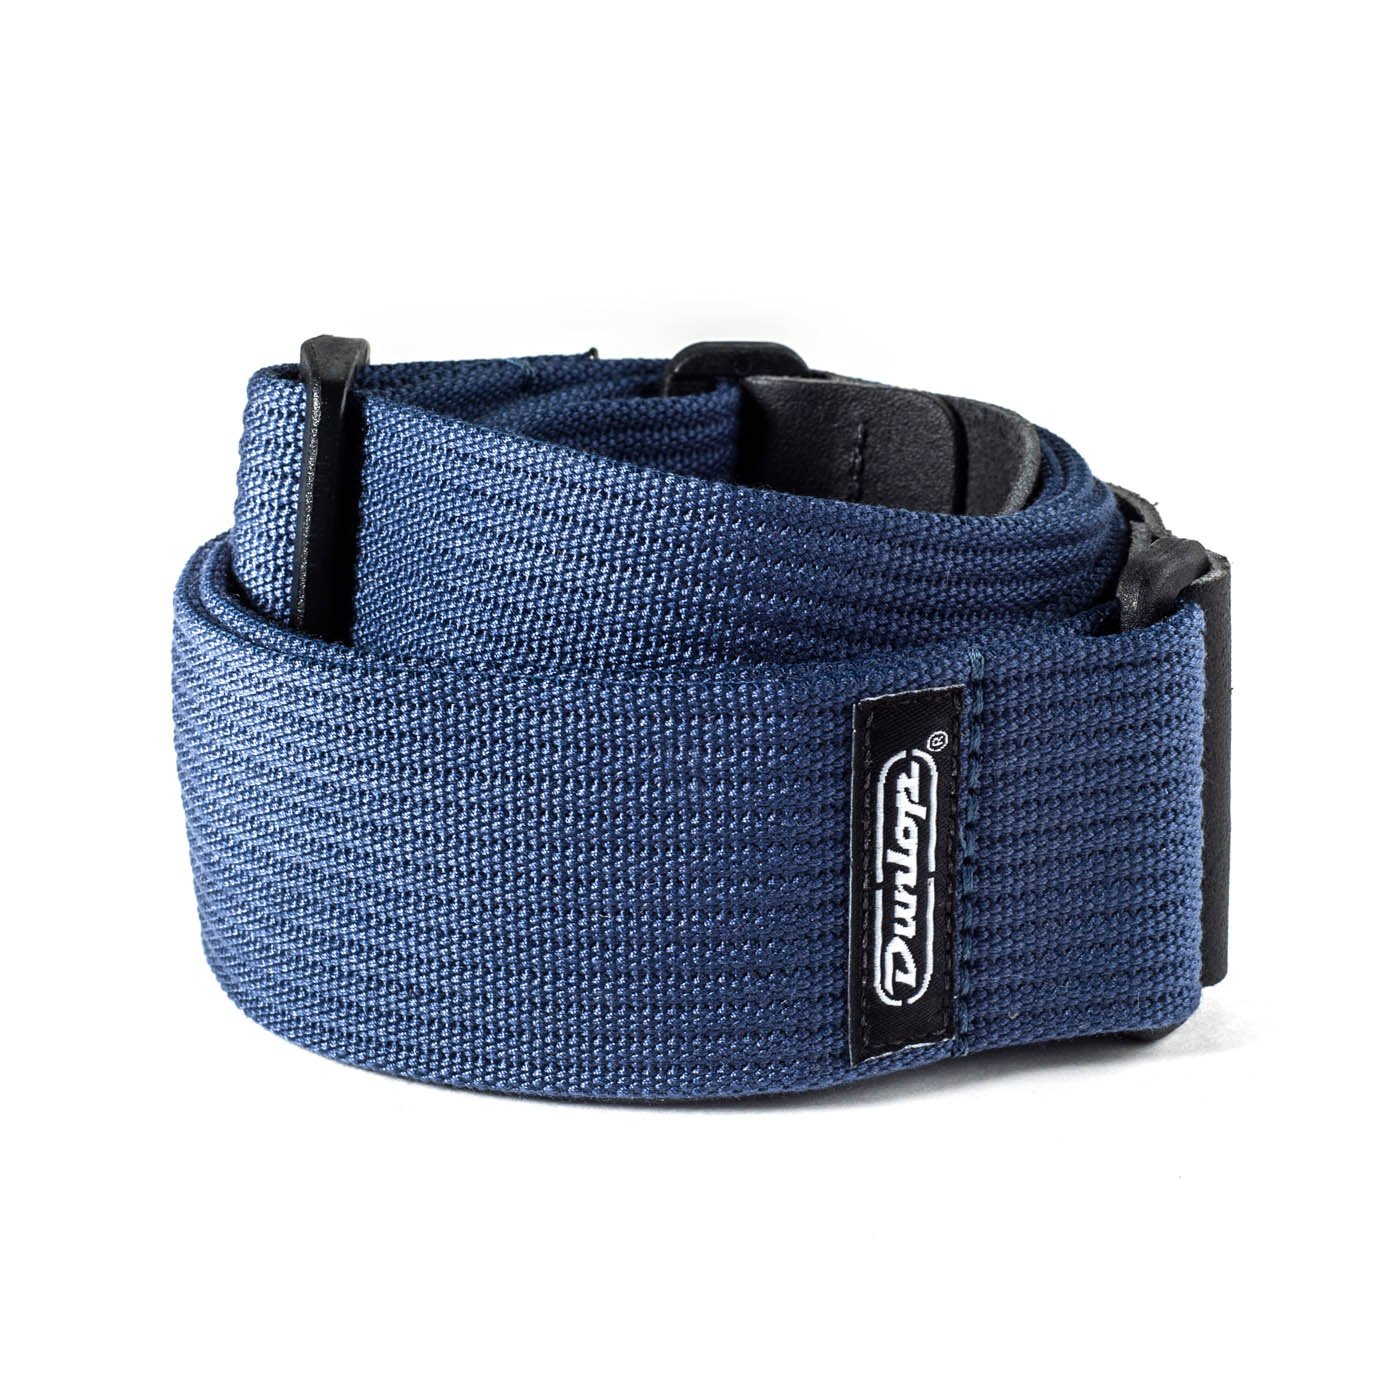 Dunlop Ribbed Cotton Strap - Navy Blue